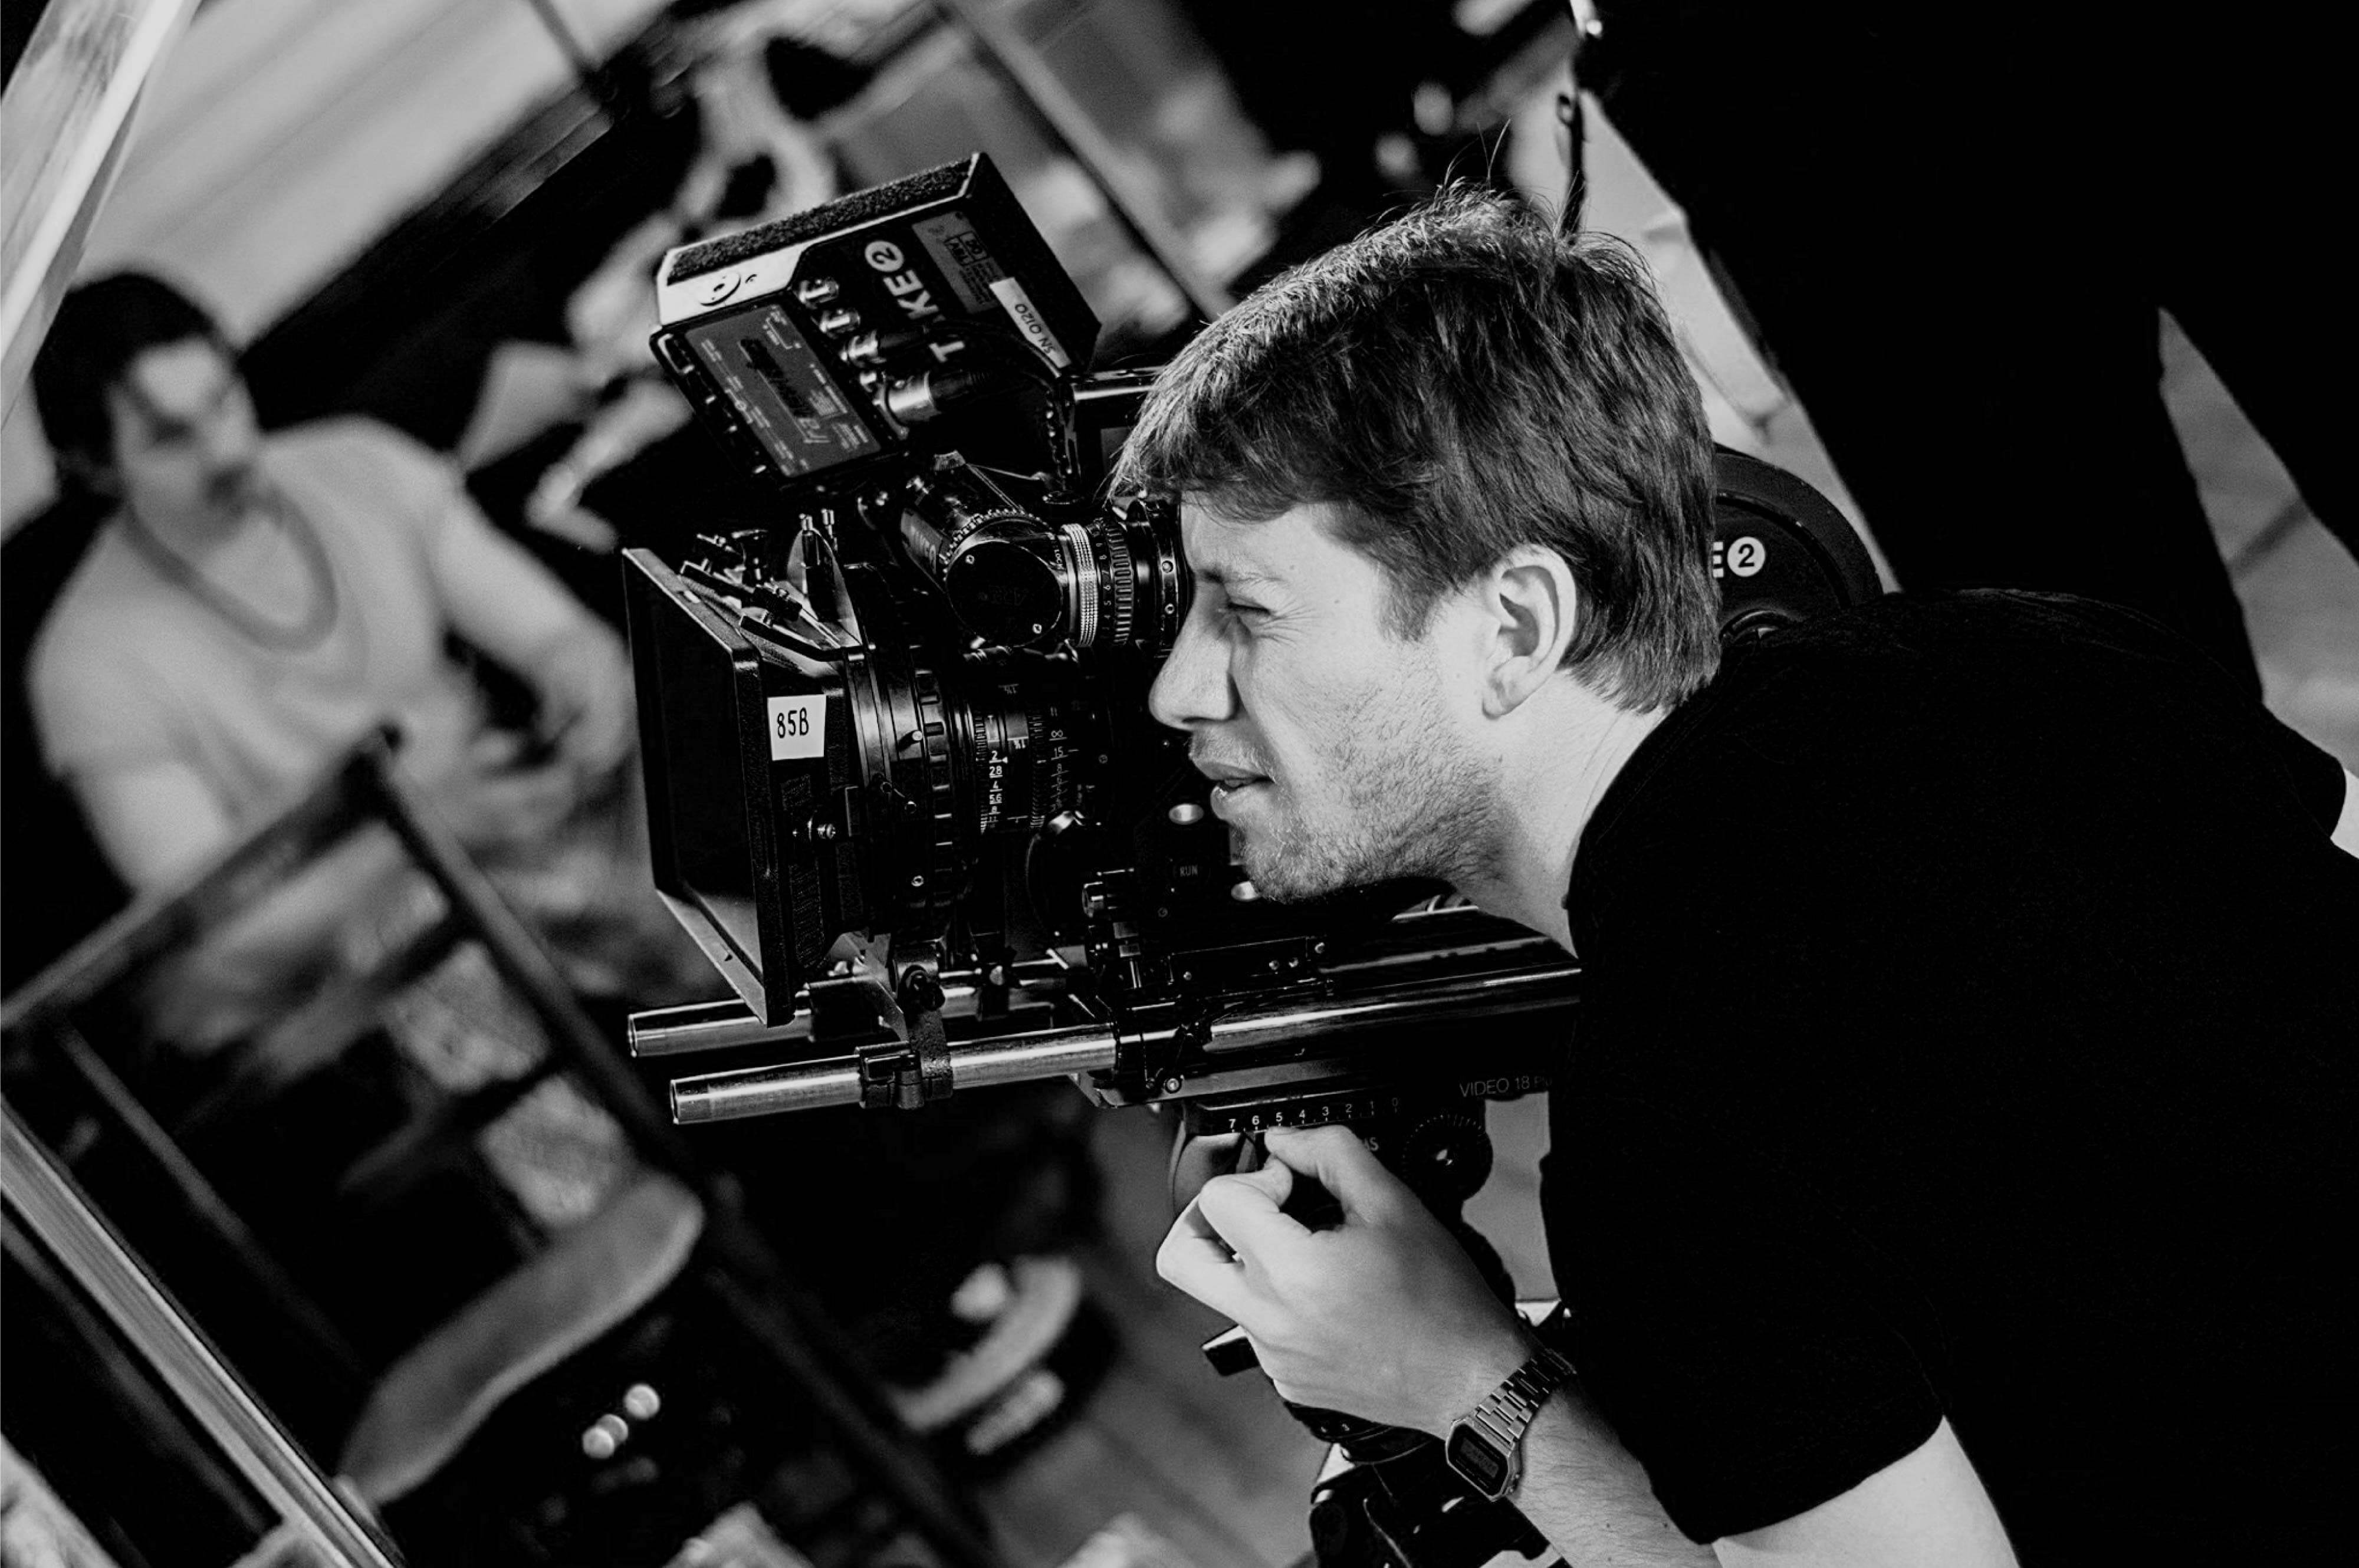 Behind the scenes of All Stretched Out, directed by Alistair Train and produced by Lunar Dragon. A man uses an analog film camera on film set.